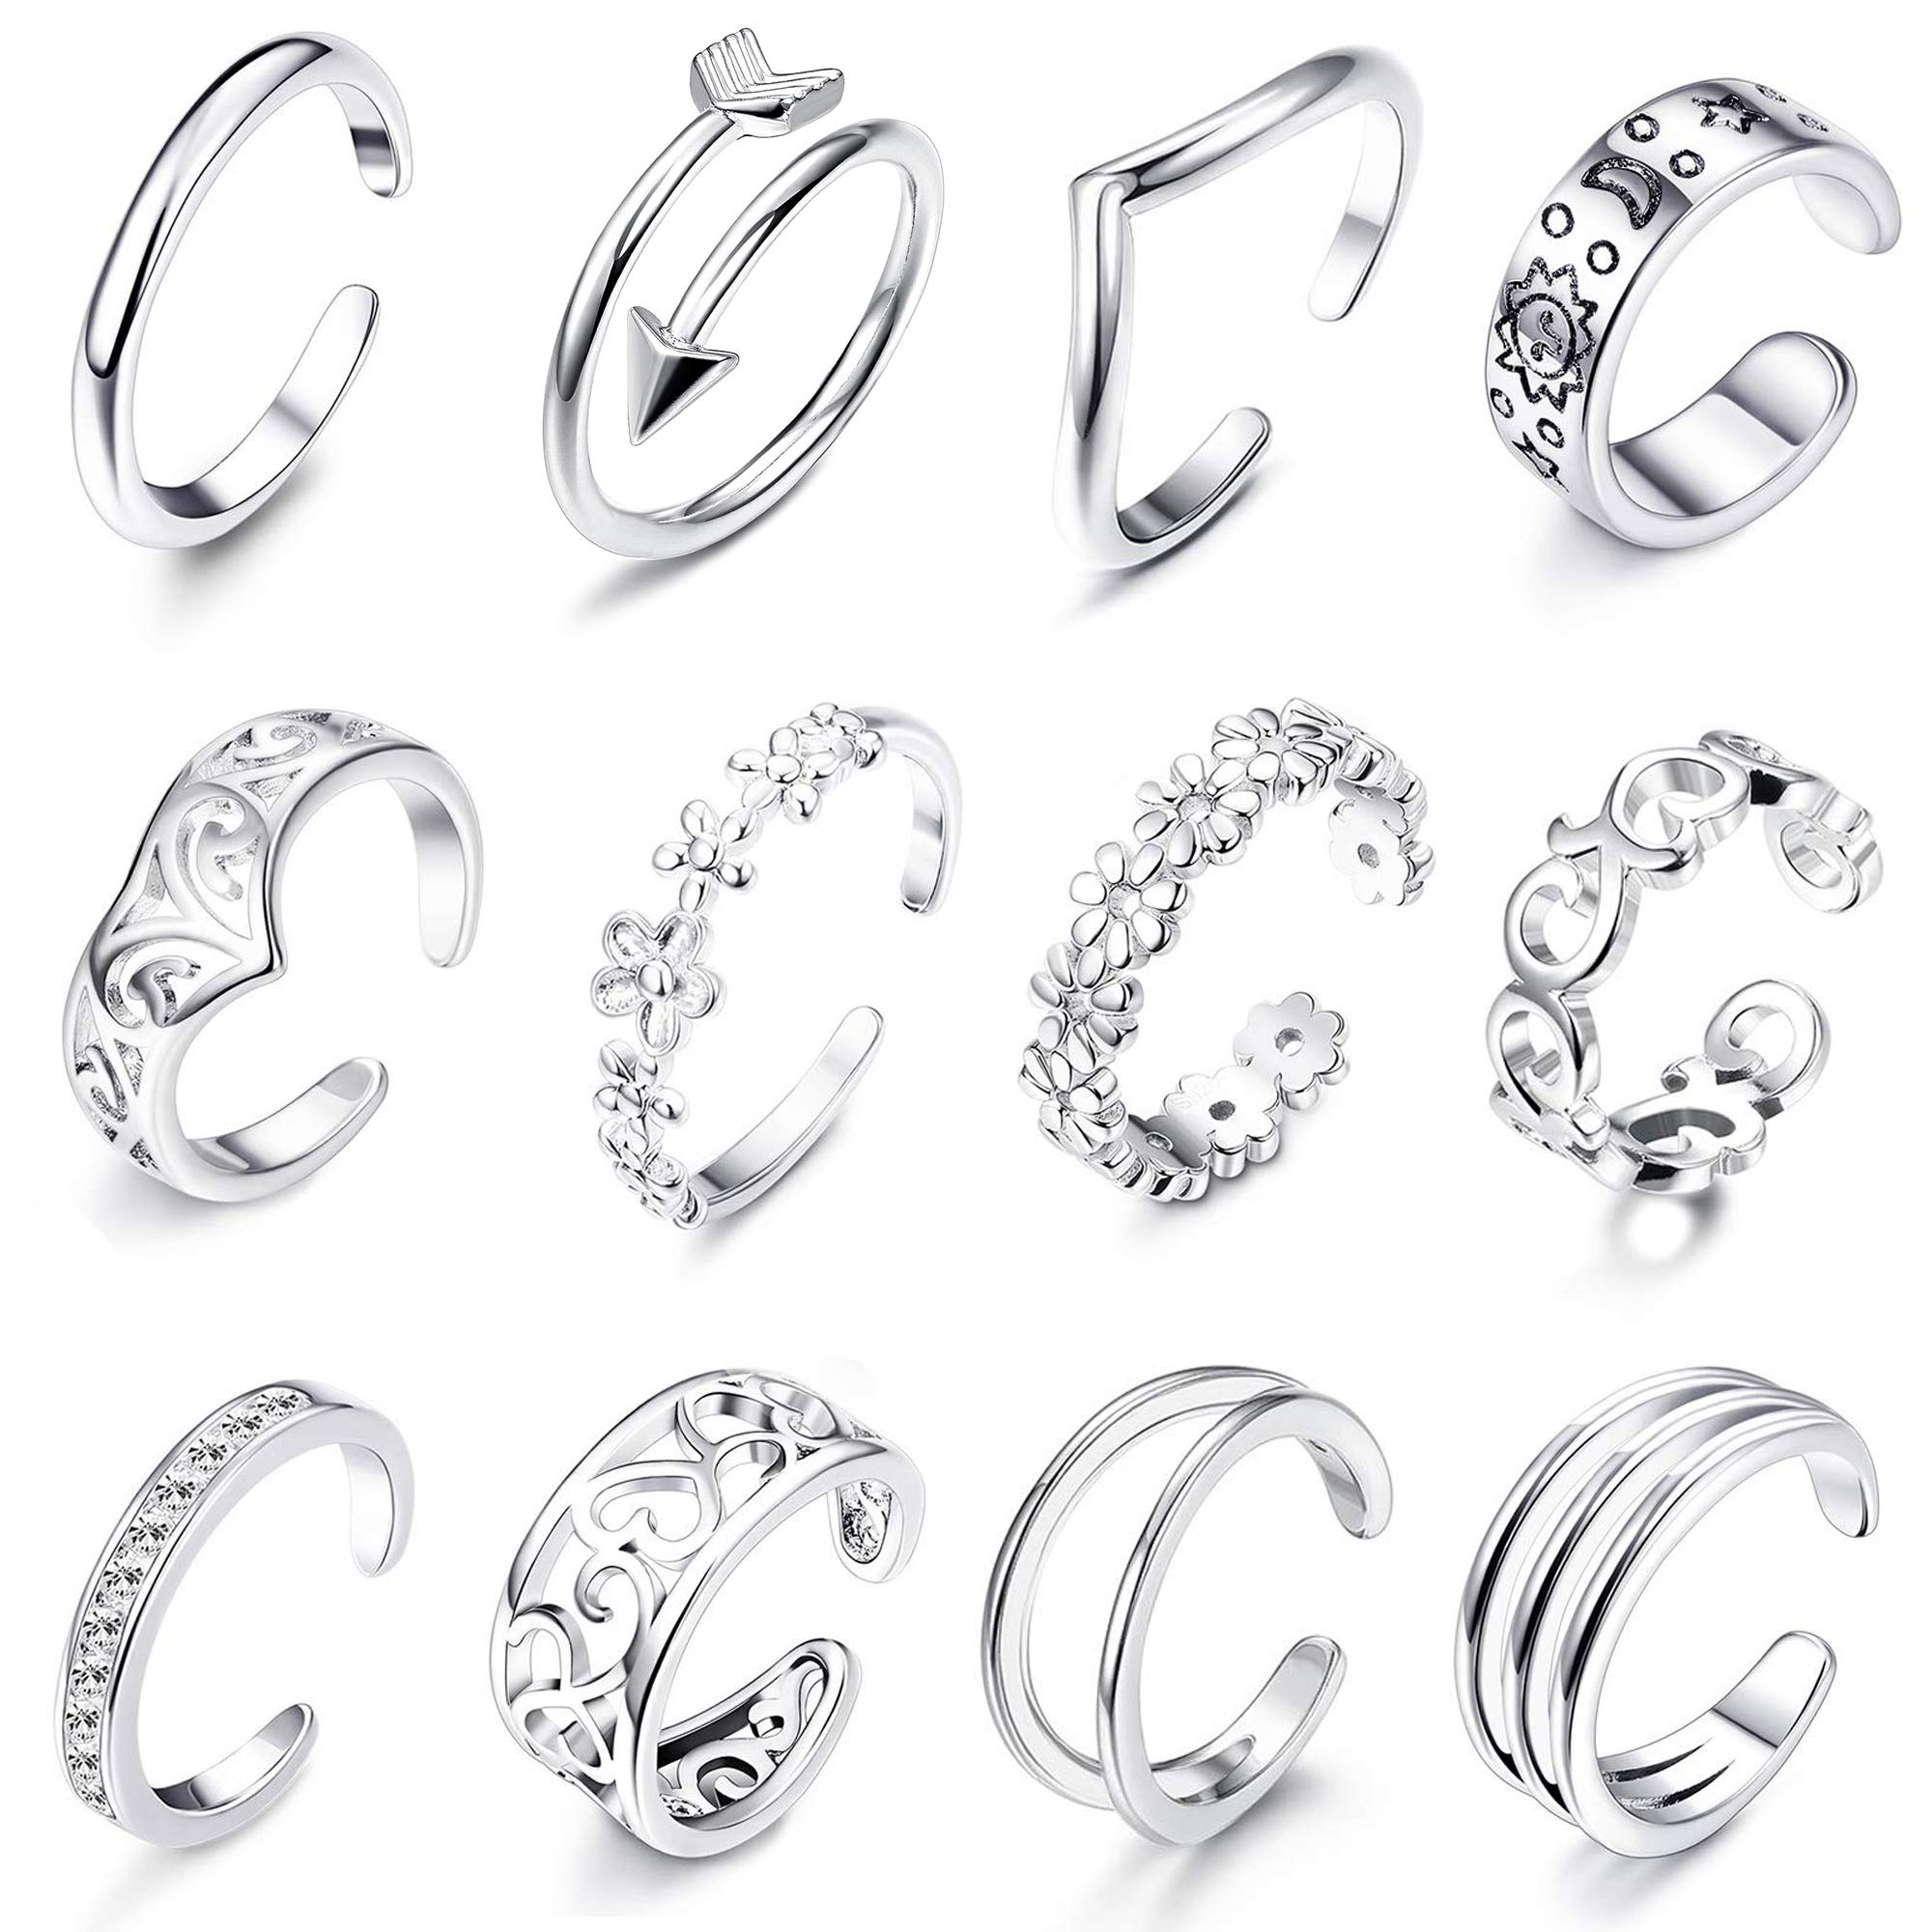 LOLIAS 12Pcs Open Toe Rings for Women Girls Arrow Adjustable Toe Band Ring Gifts Jewelry Set,Silver